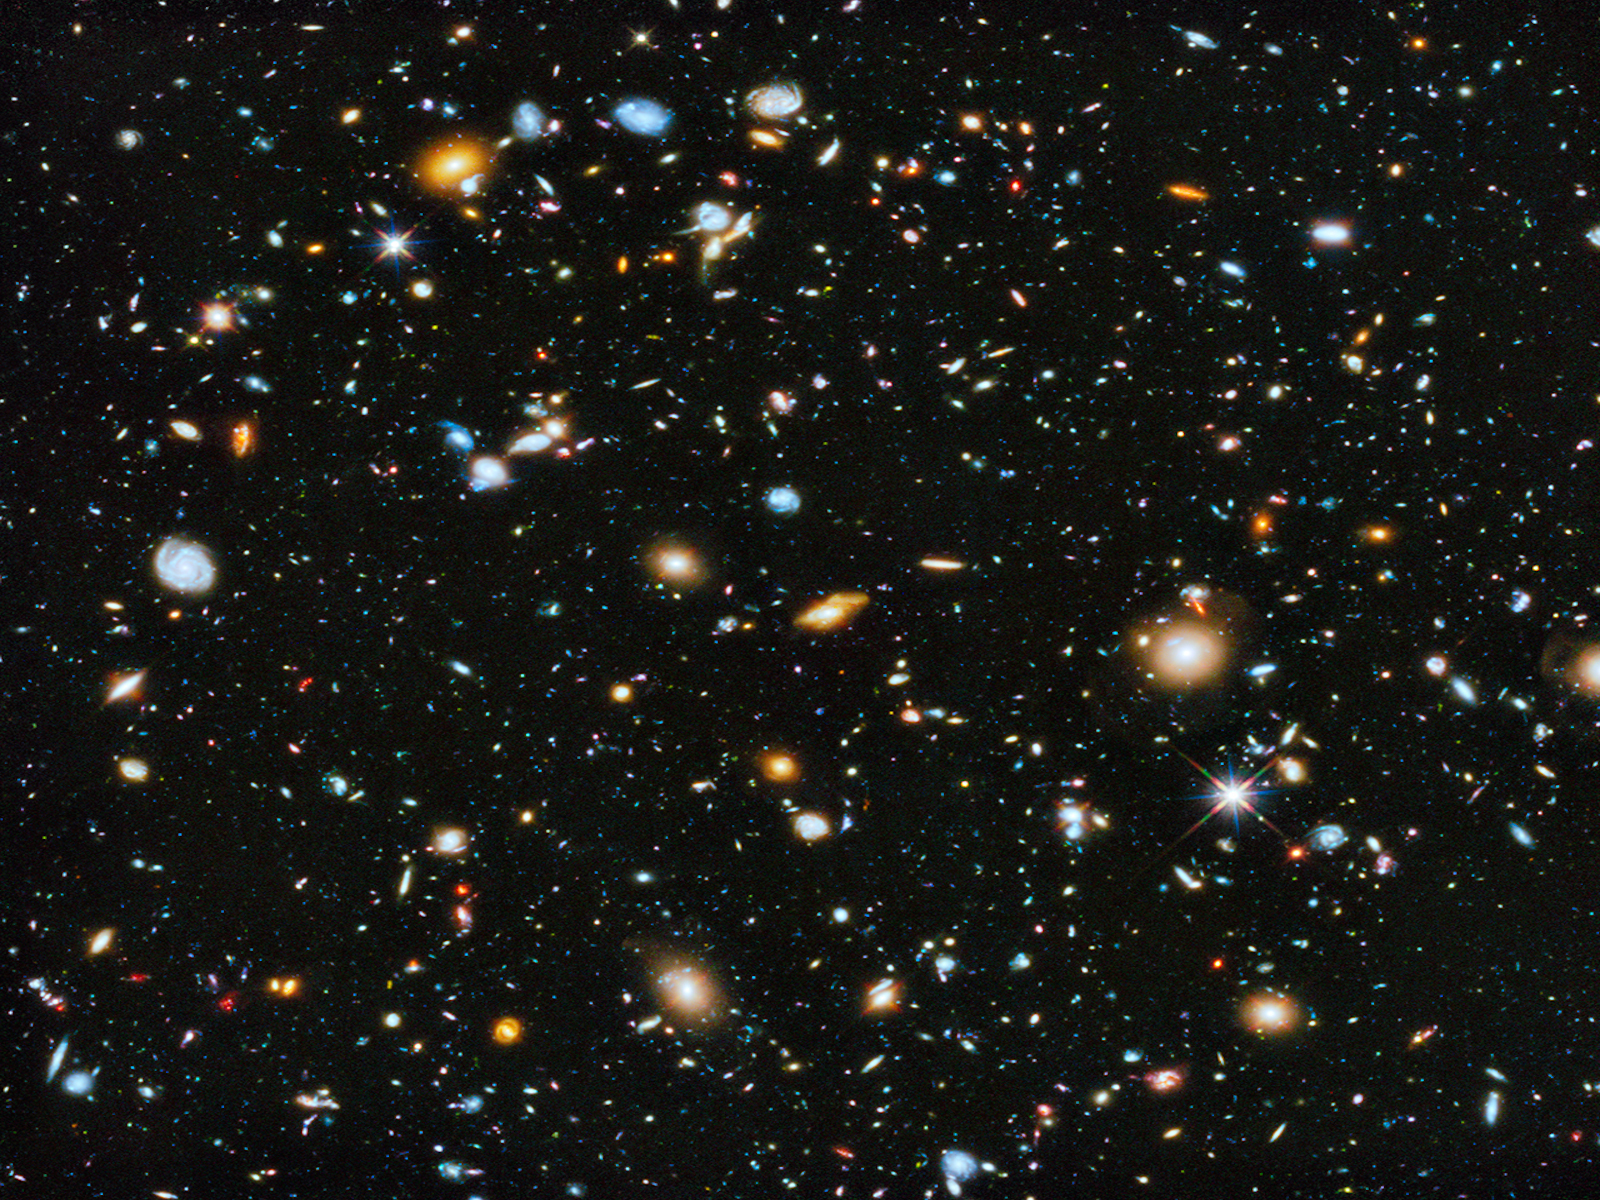 Hubble Ultra Deep Field 2014 - 1600